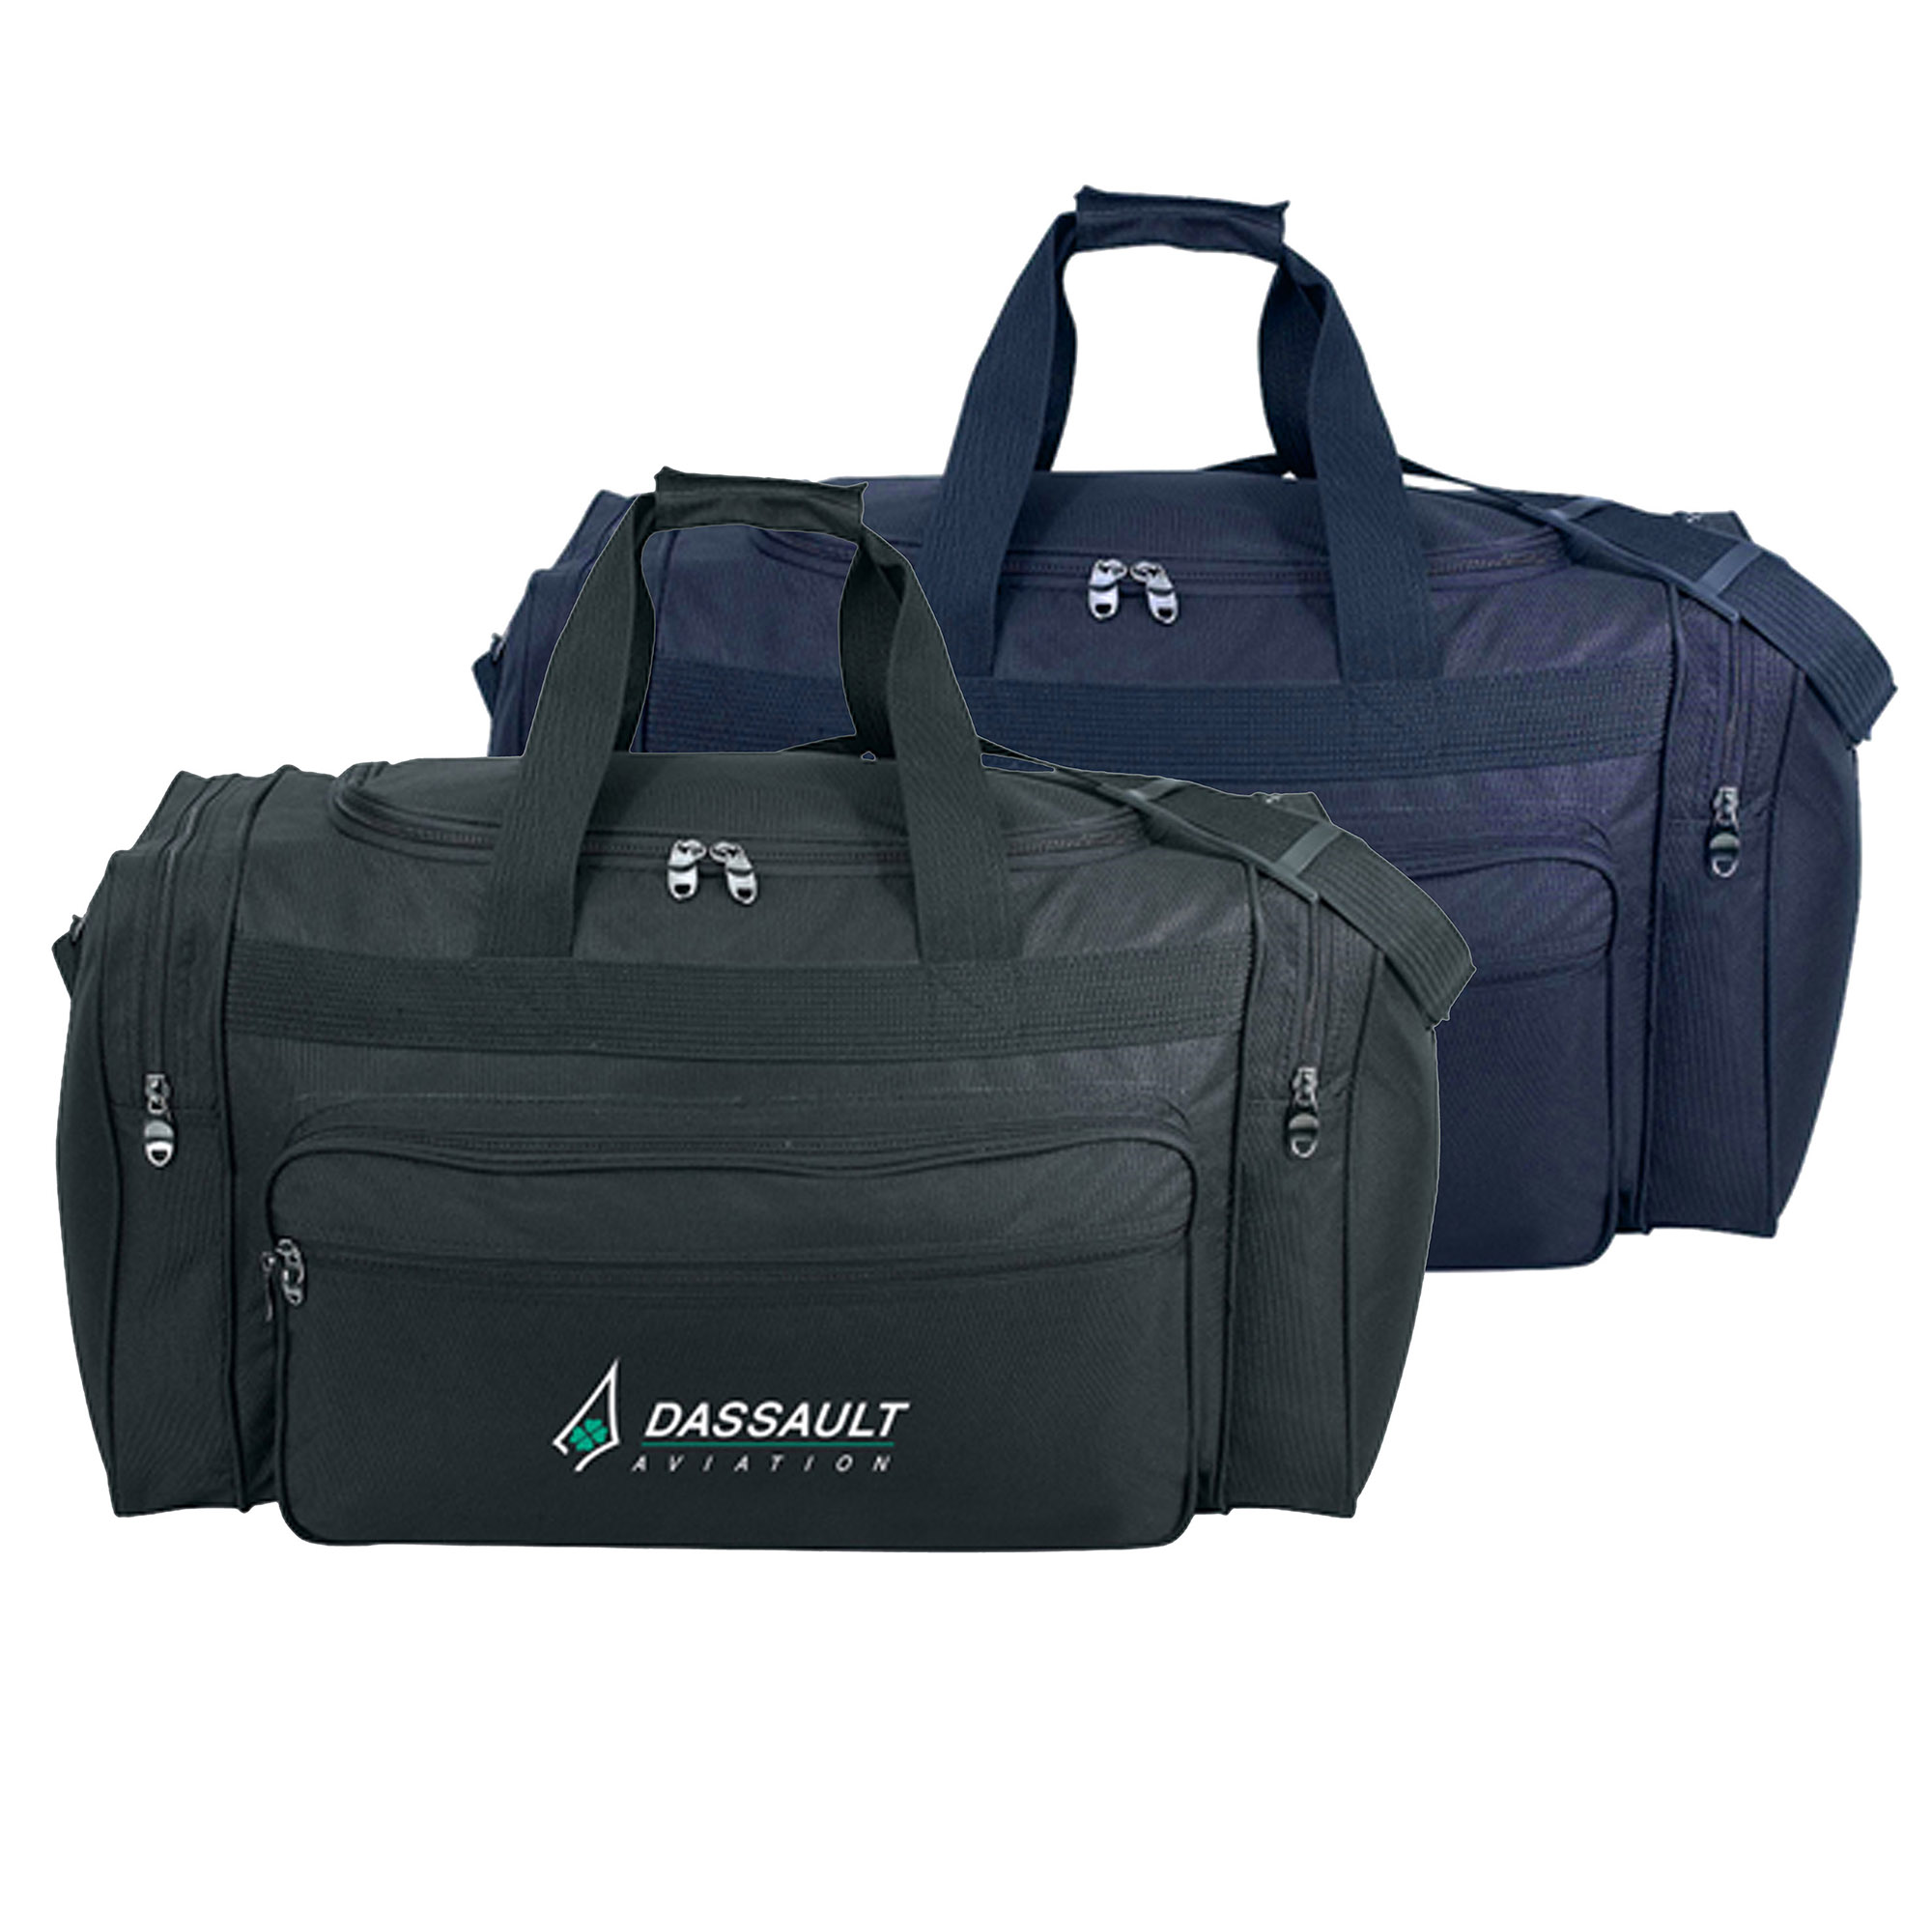 DELUXE TRAVEL BAG - 1 Colour Print, From $22.2